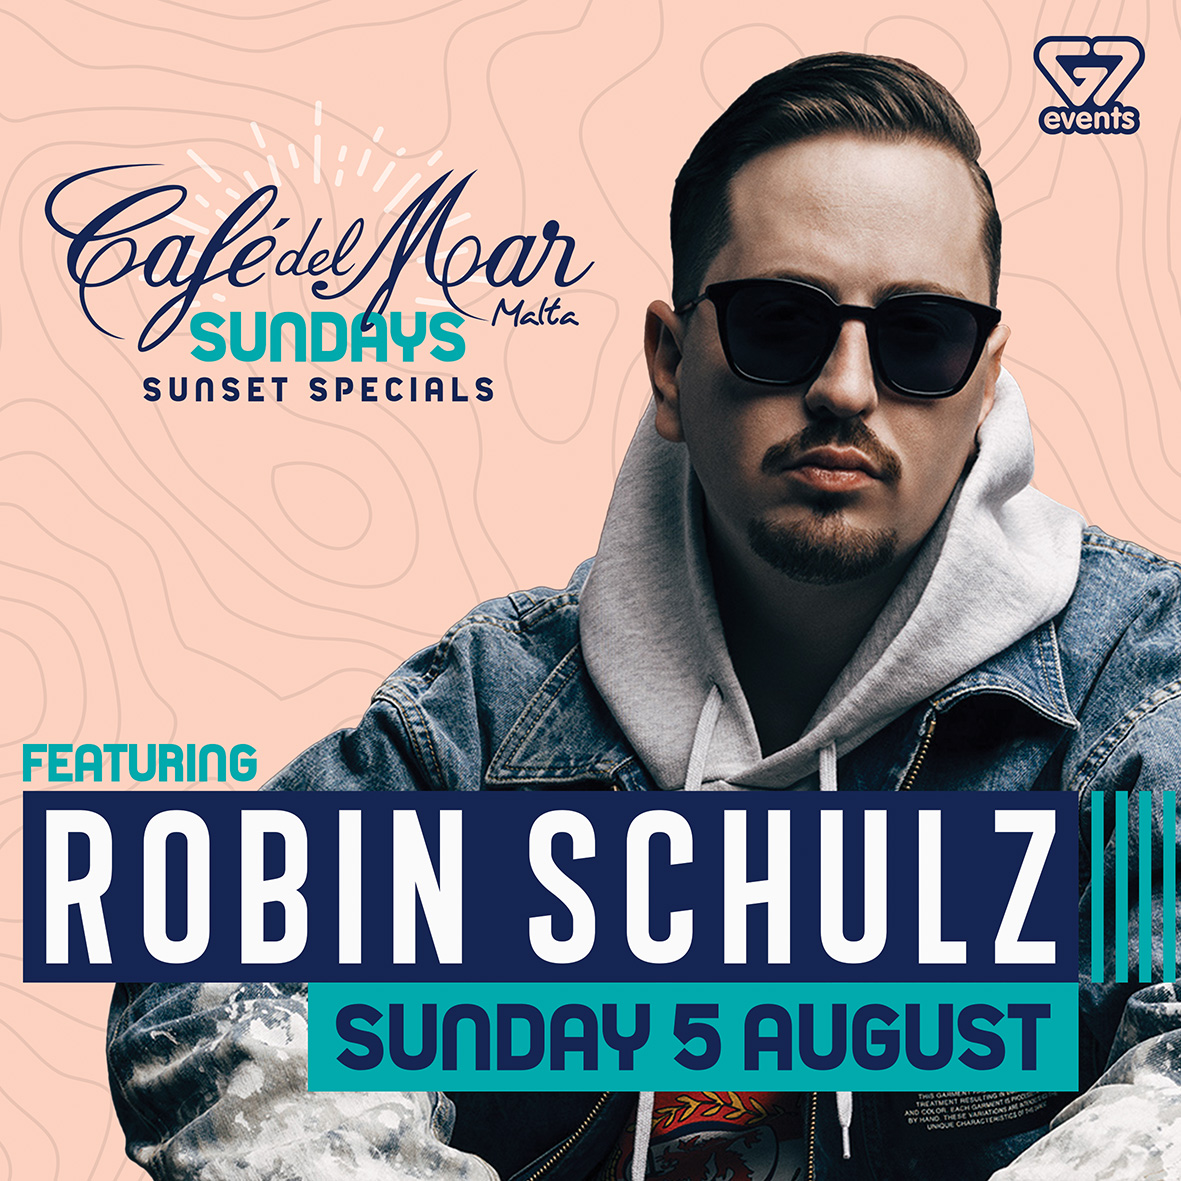 Robin Schulz at Café Del Mar flyer